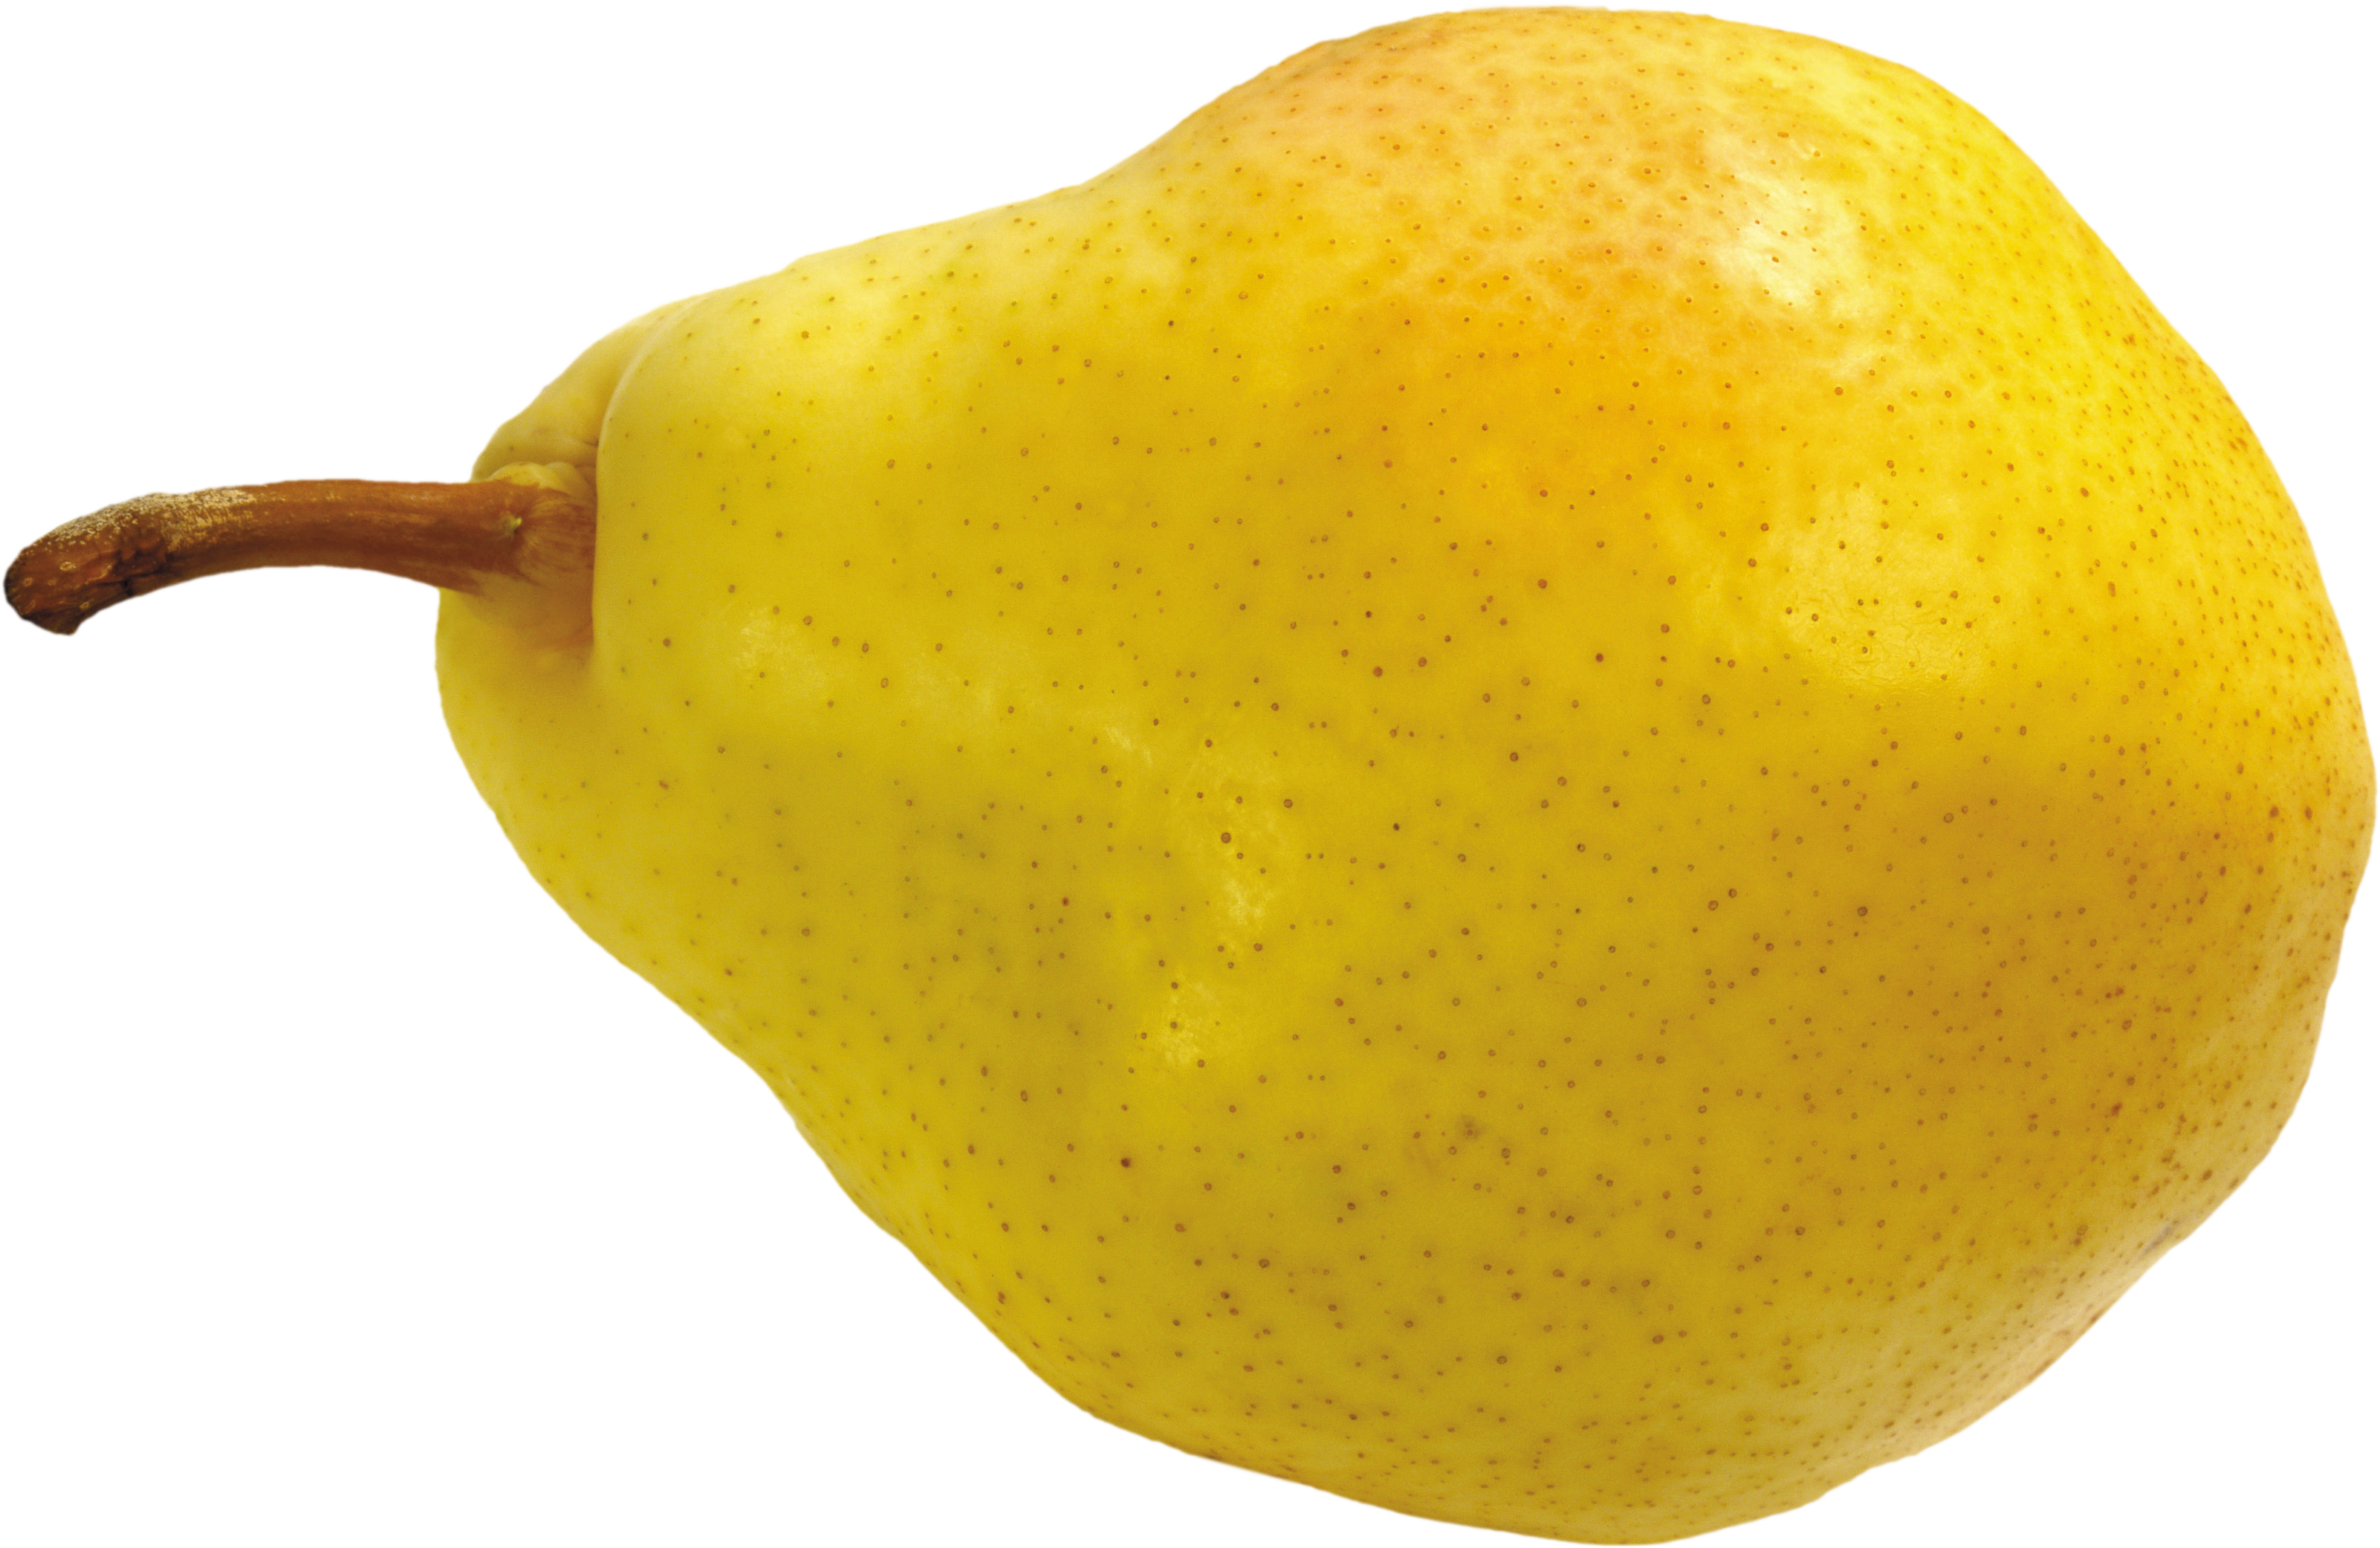 Pear clipart pear shape. Png image